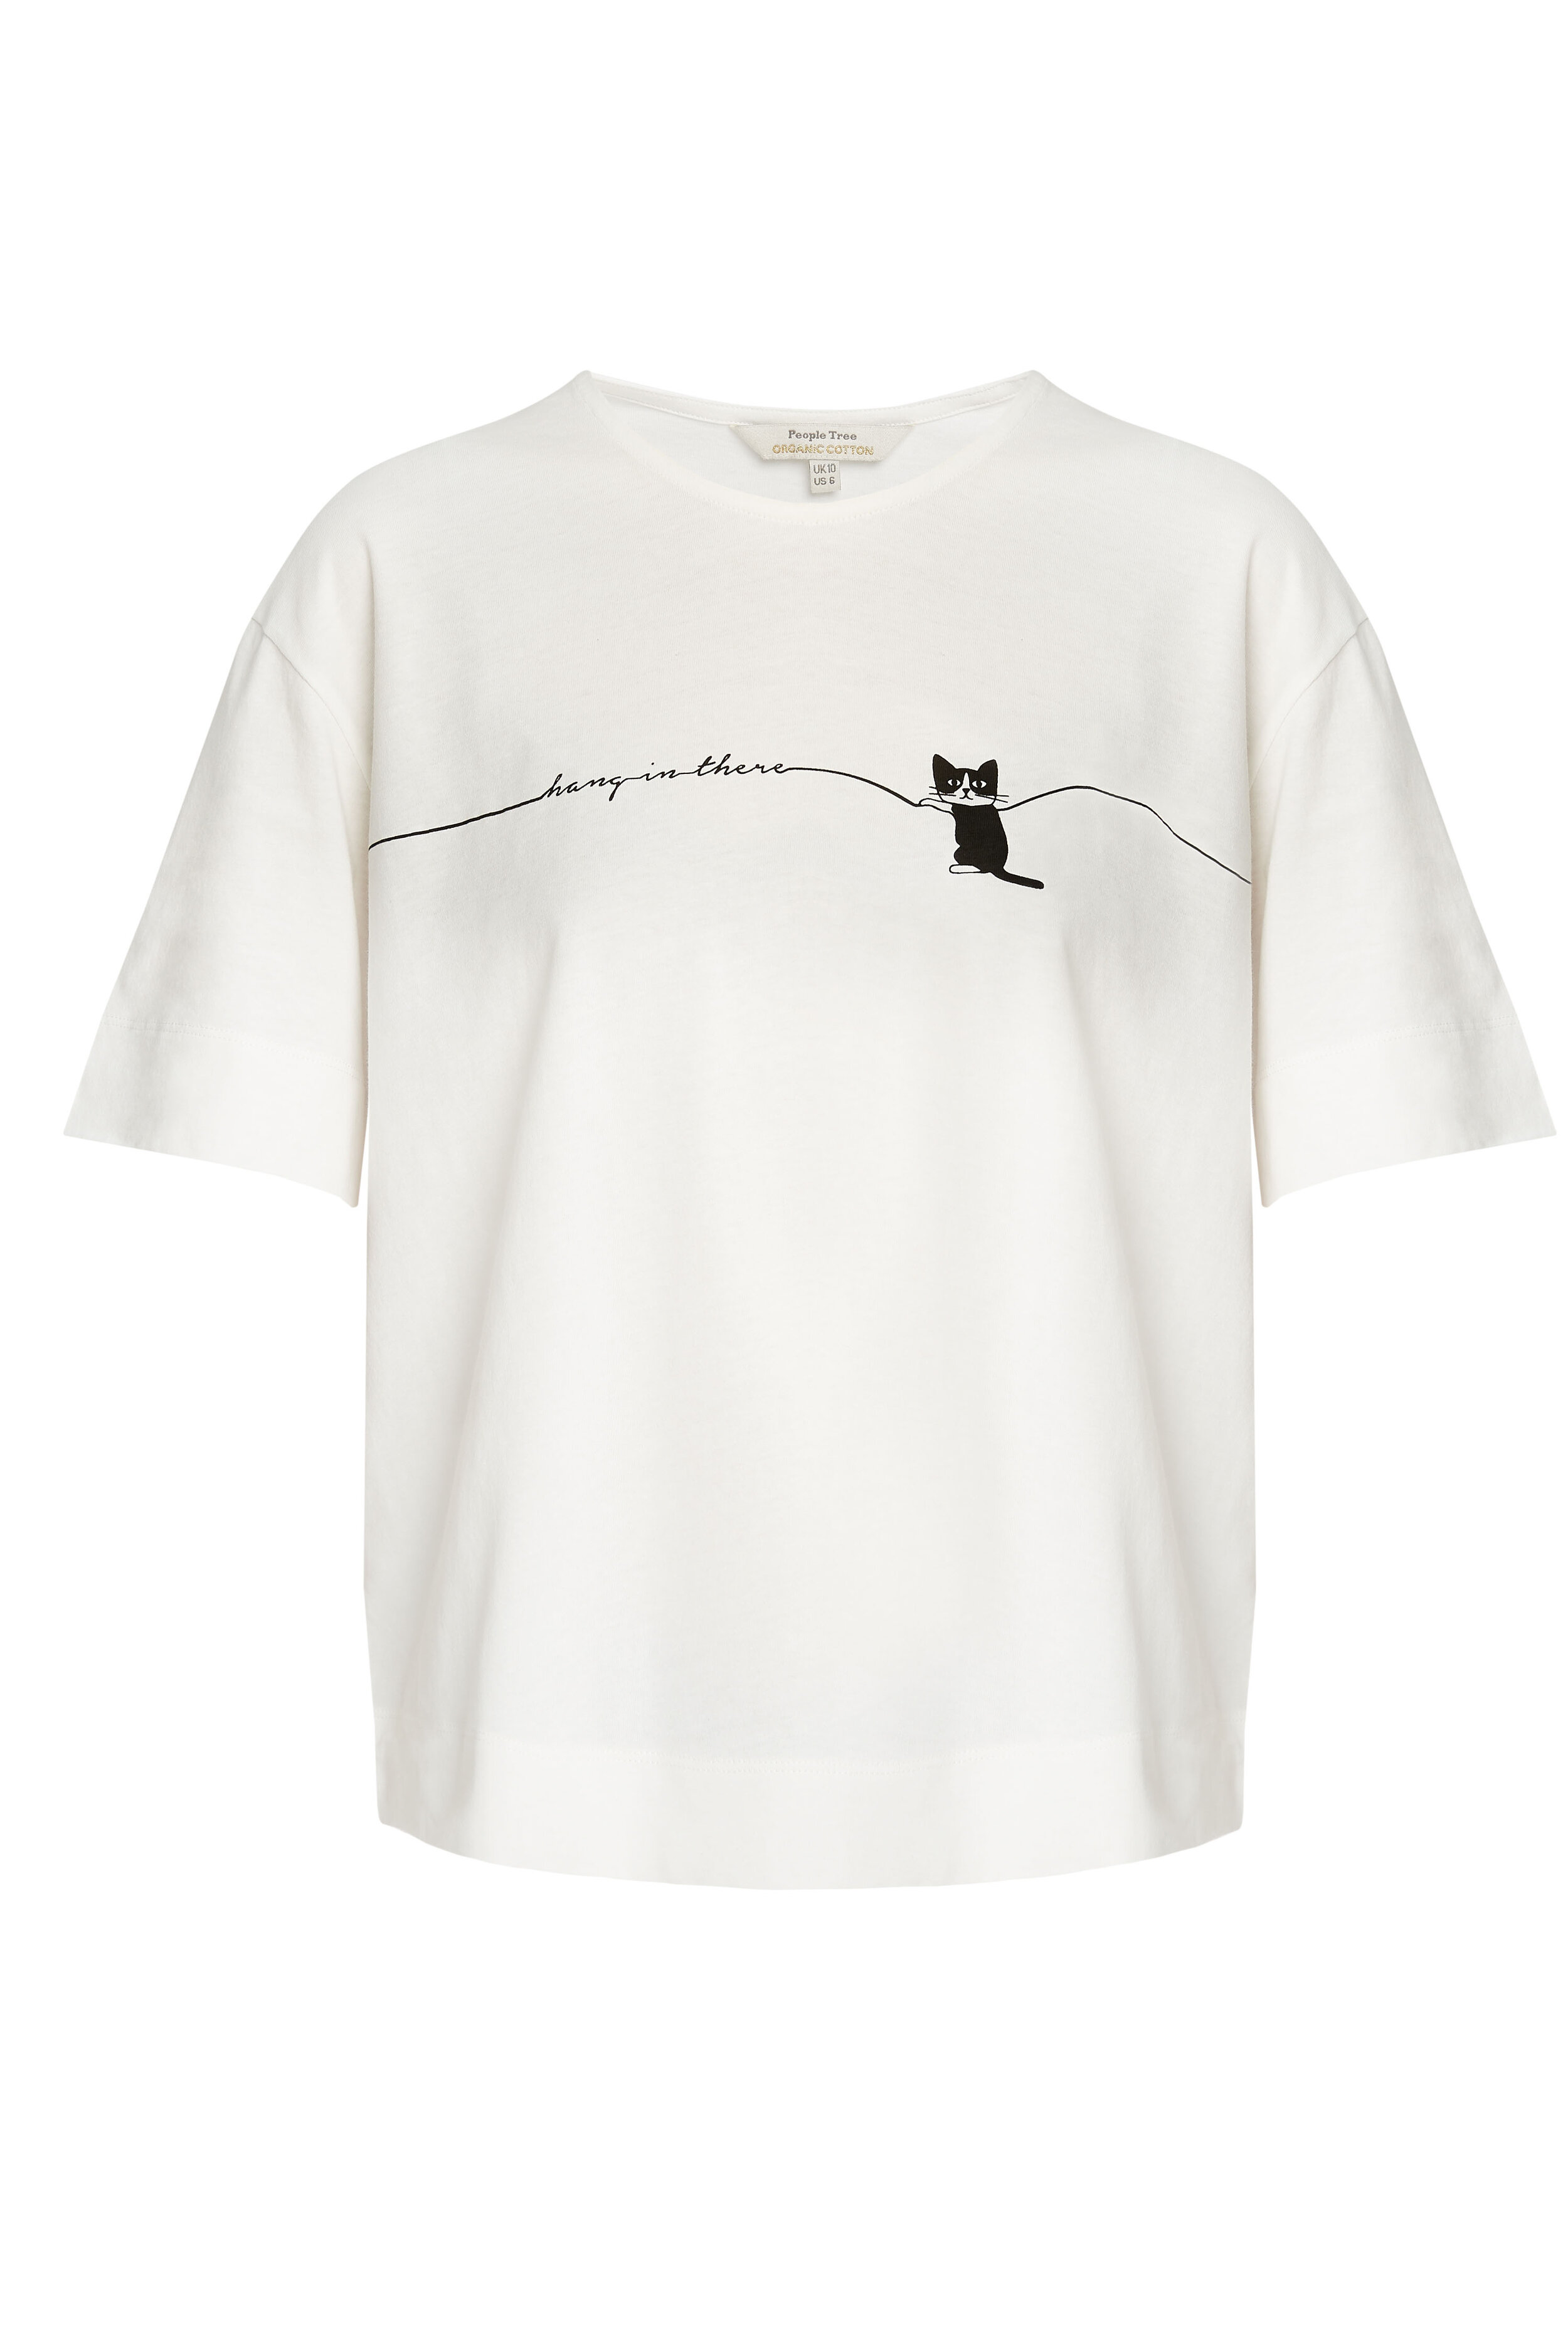 People Tree Hang in There Tee